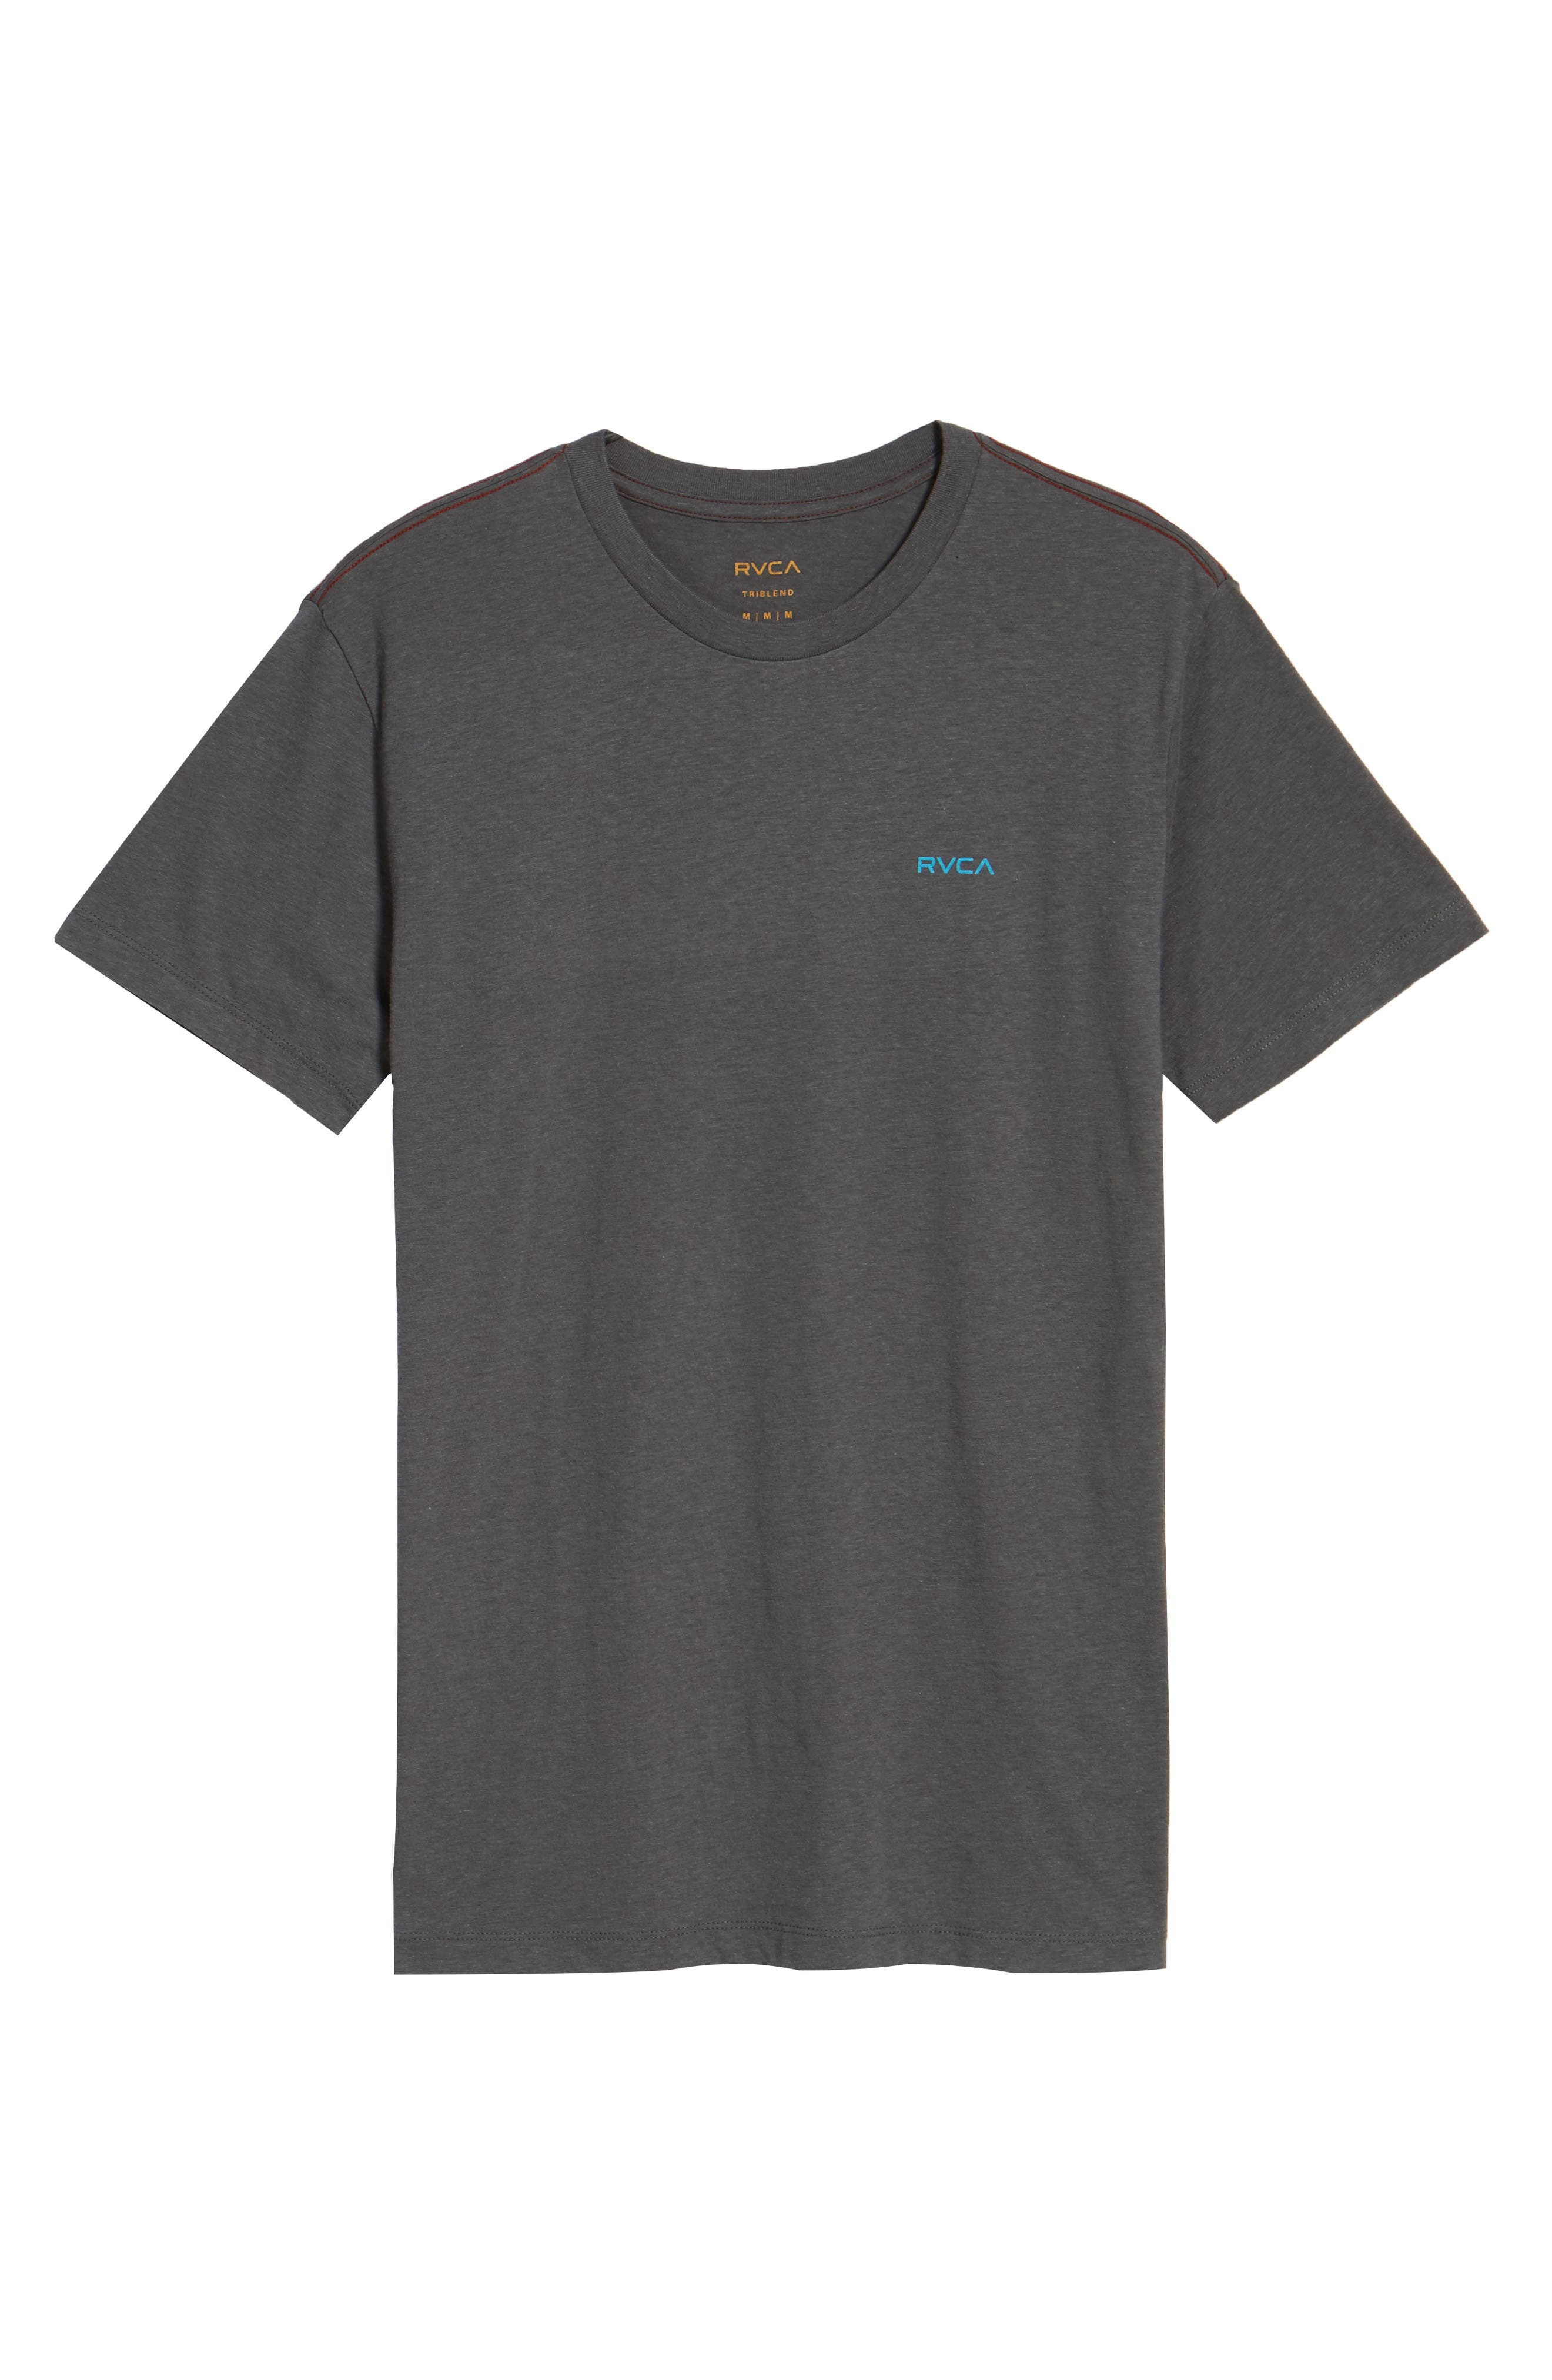 Small RVCA Chest Graphic T-Shirt,                             Alternate thumbnail 6, color,                             076